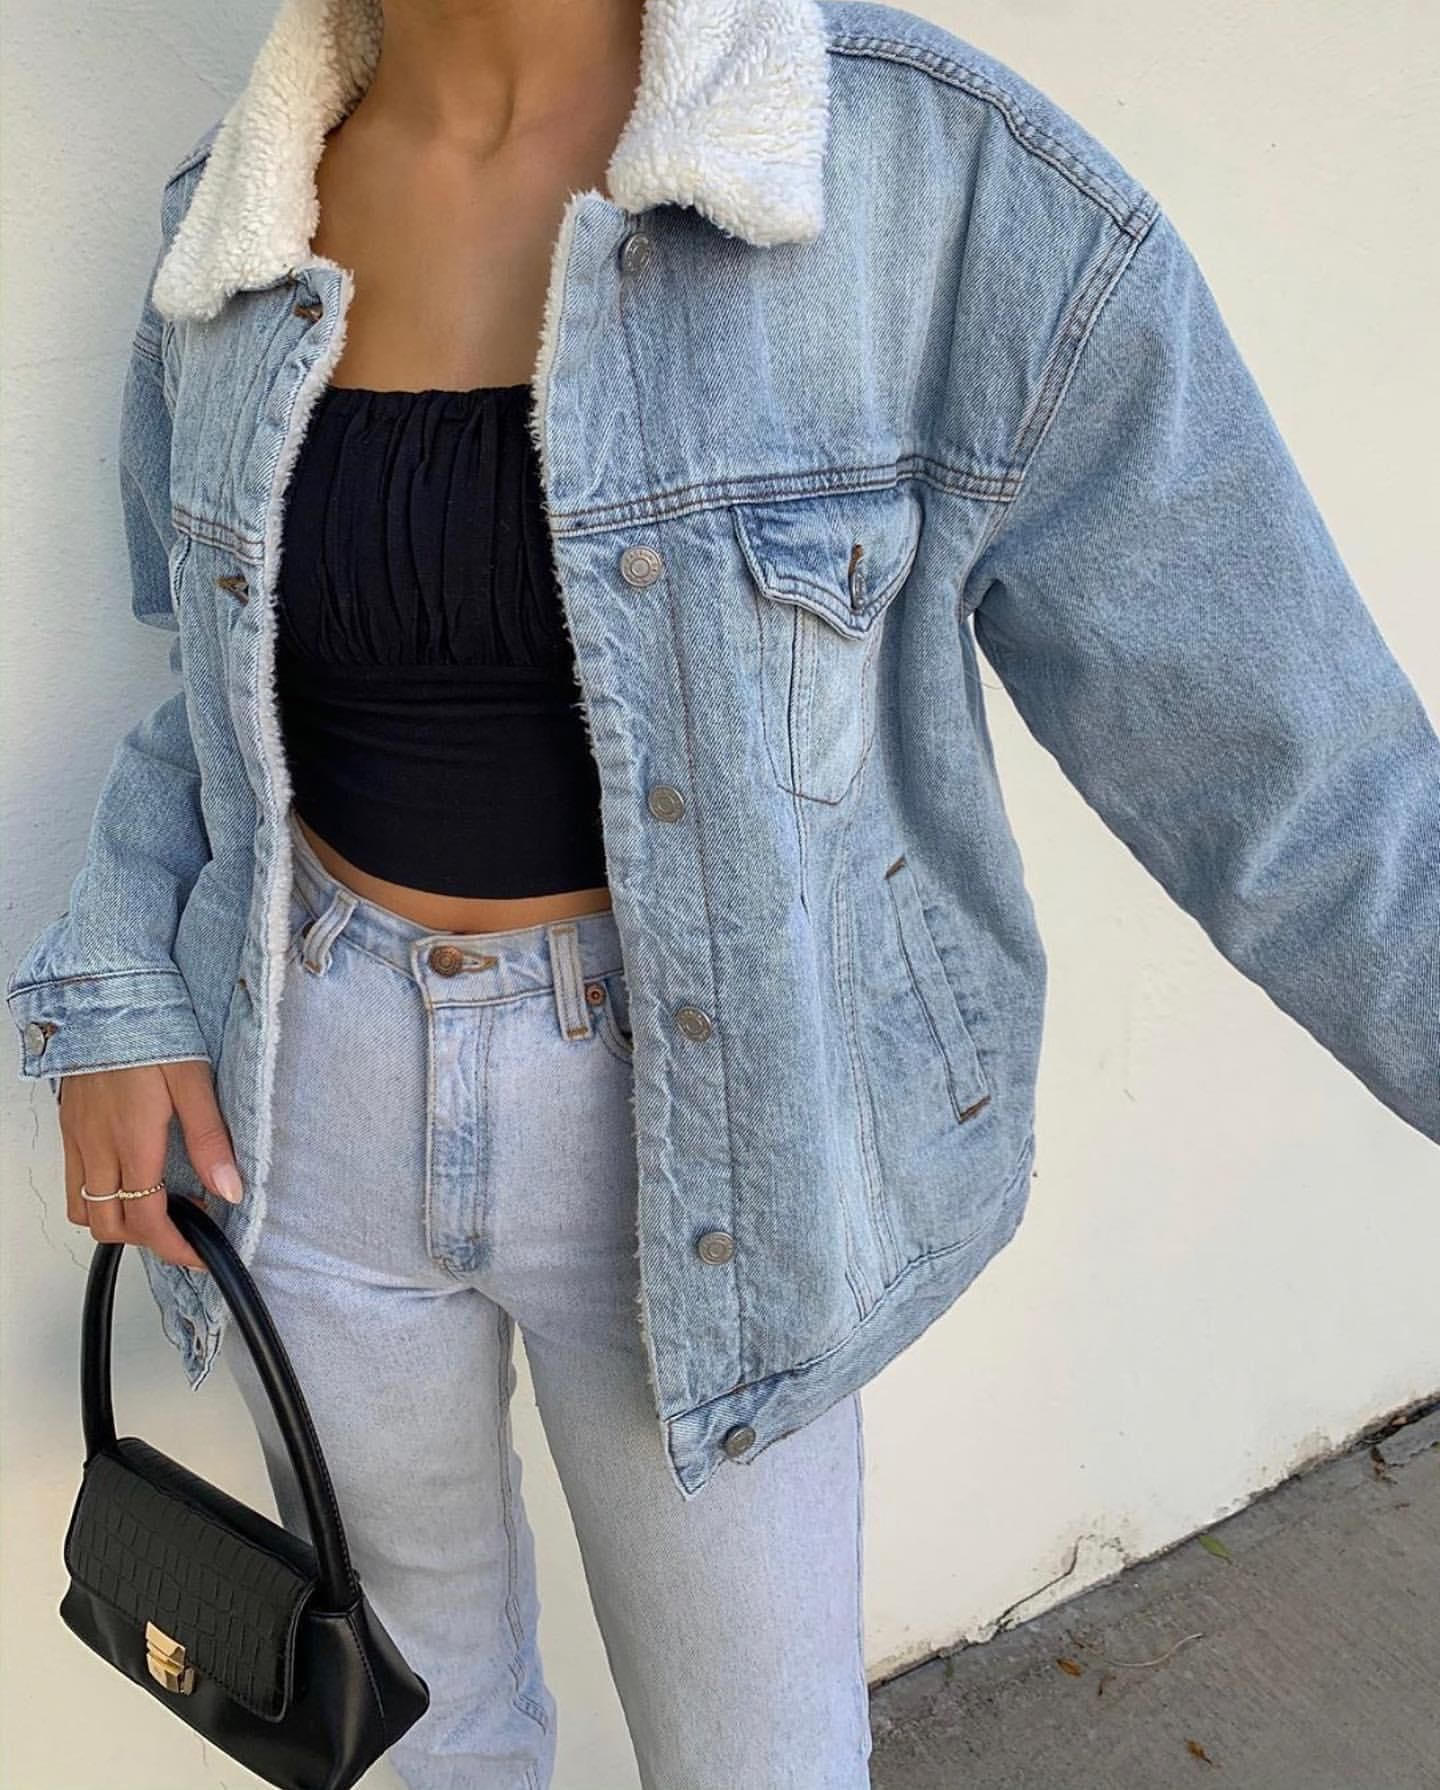 Get The Jacket For 65 At Pacsun Com Wheretoget Jacket Outfit Women Denim Jacket With Fur Denim Jacket Outfit [ 1790 x 1440 Pixel ]